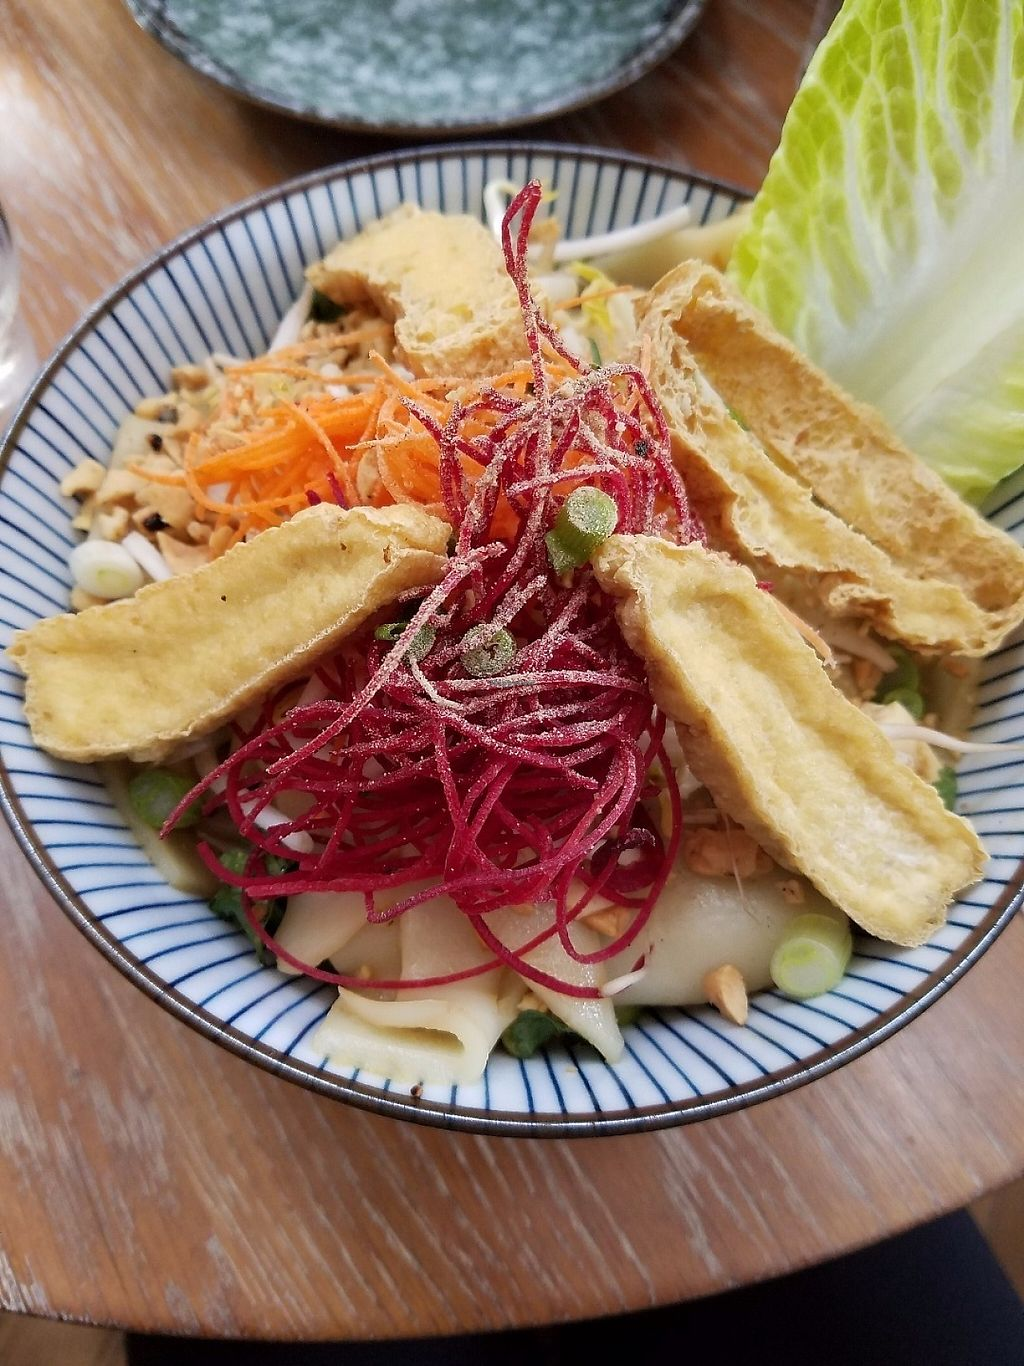 """Photo of DC Noodles  by <a href=""""/members/profile/MerryRose"""">MerryRose</a> <br/>Noodle salad with wide rice noodles, bean sprouts, carrot, beetroot, romaine, peanuts, a sweet (vegan) sauce, as well as both crispy and regular firm tofu <br/> May 11, 2017  - <a href='/contact/abuse/image/92005/257893'>Report</a>"""